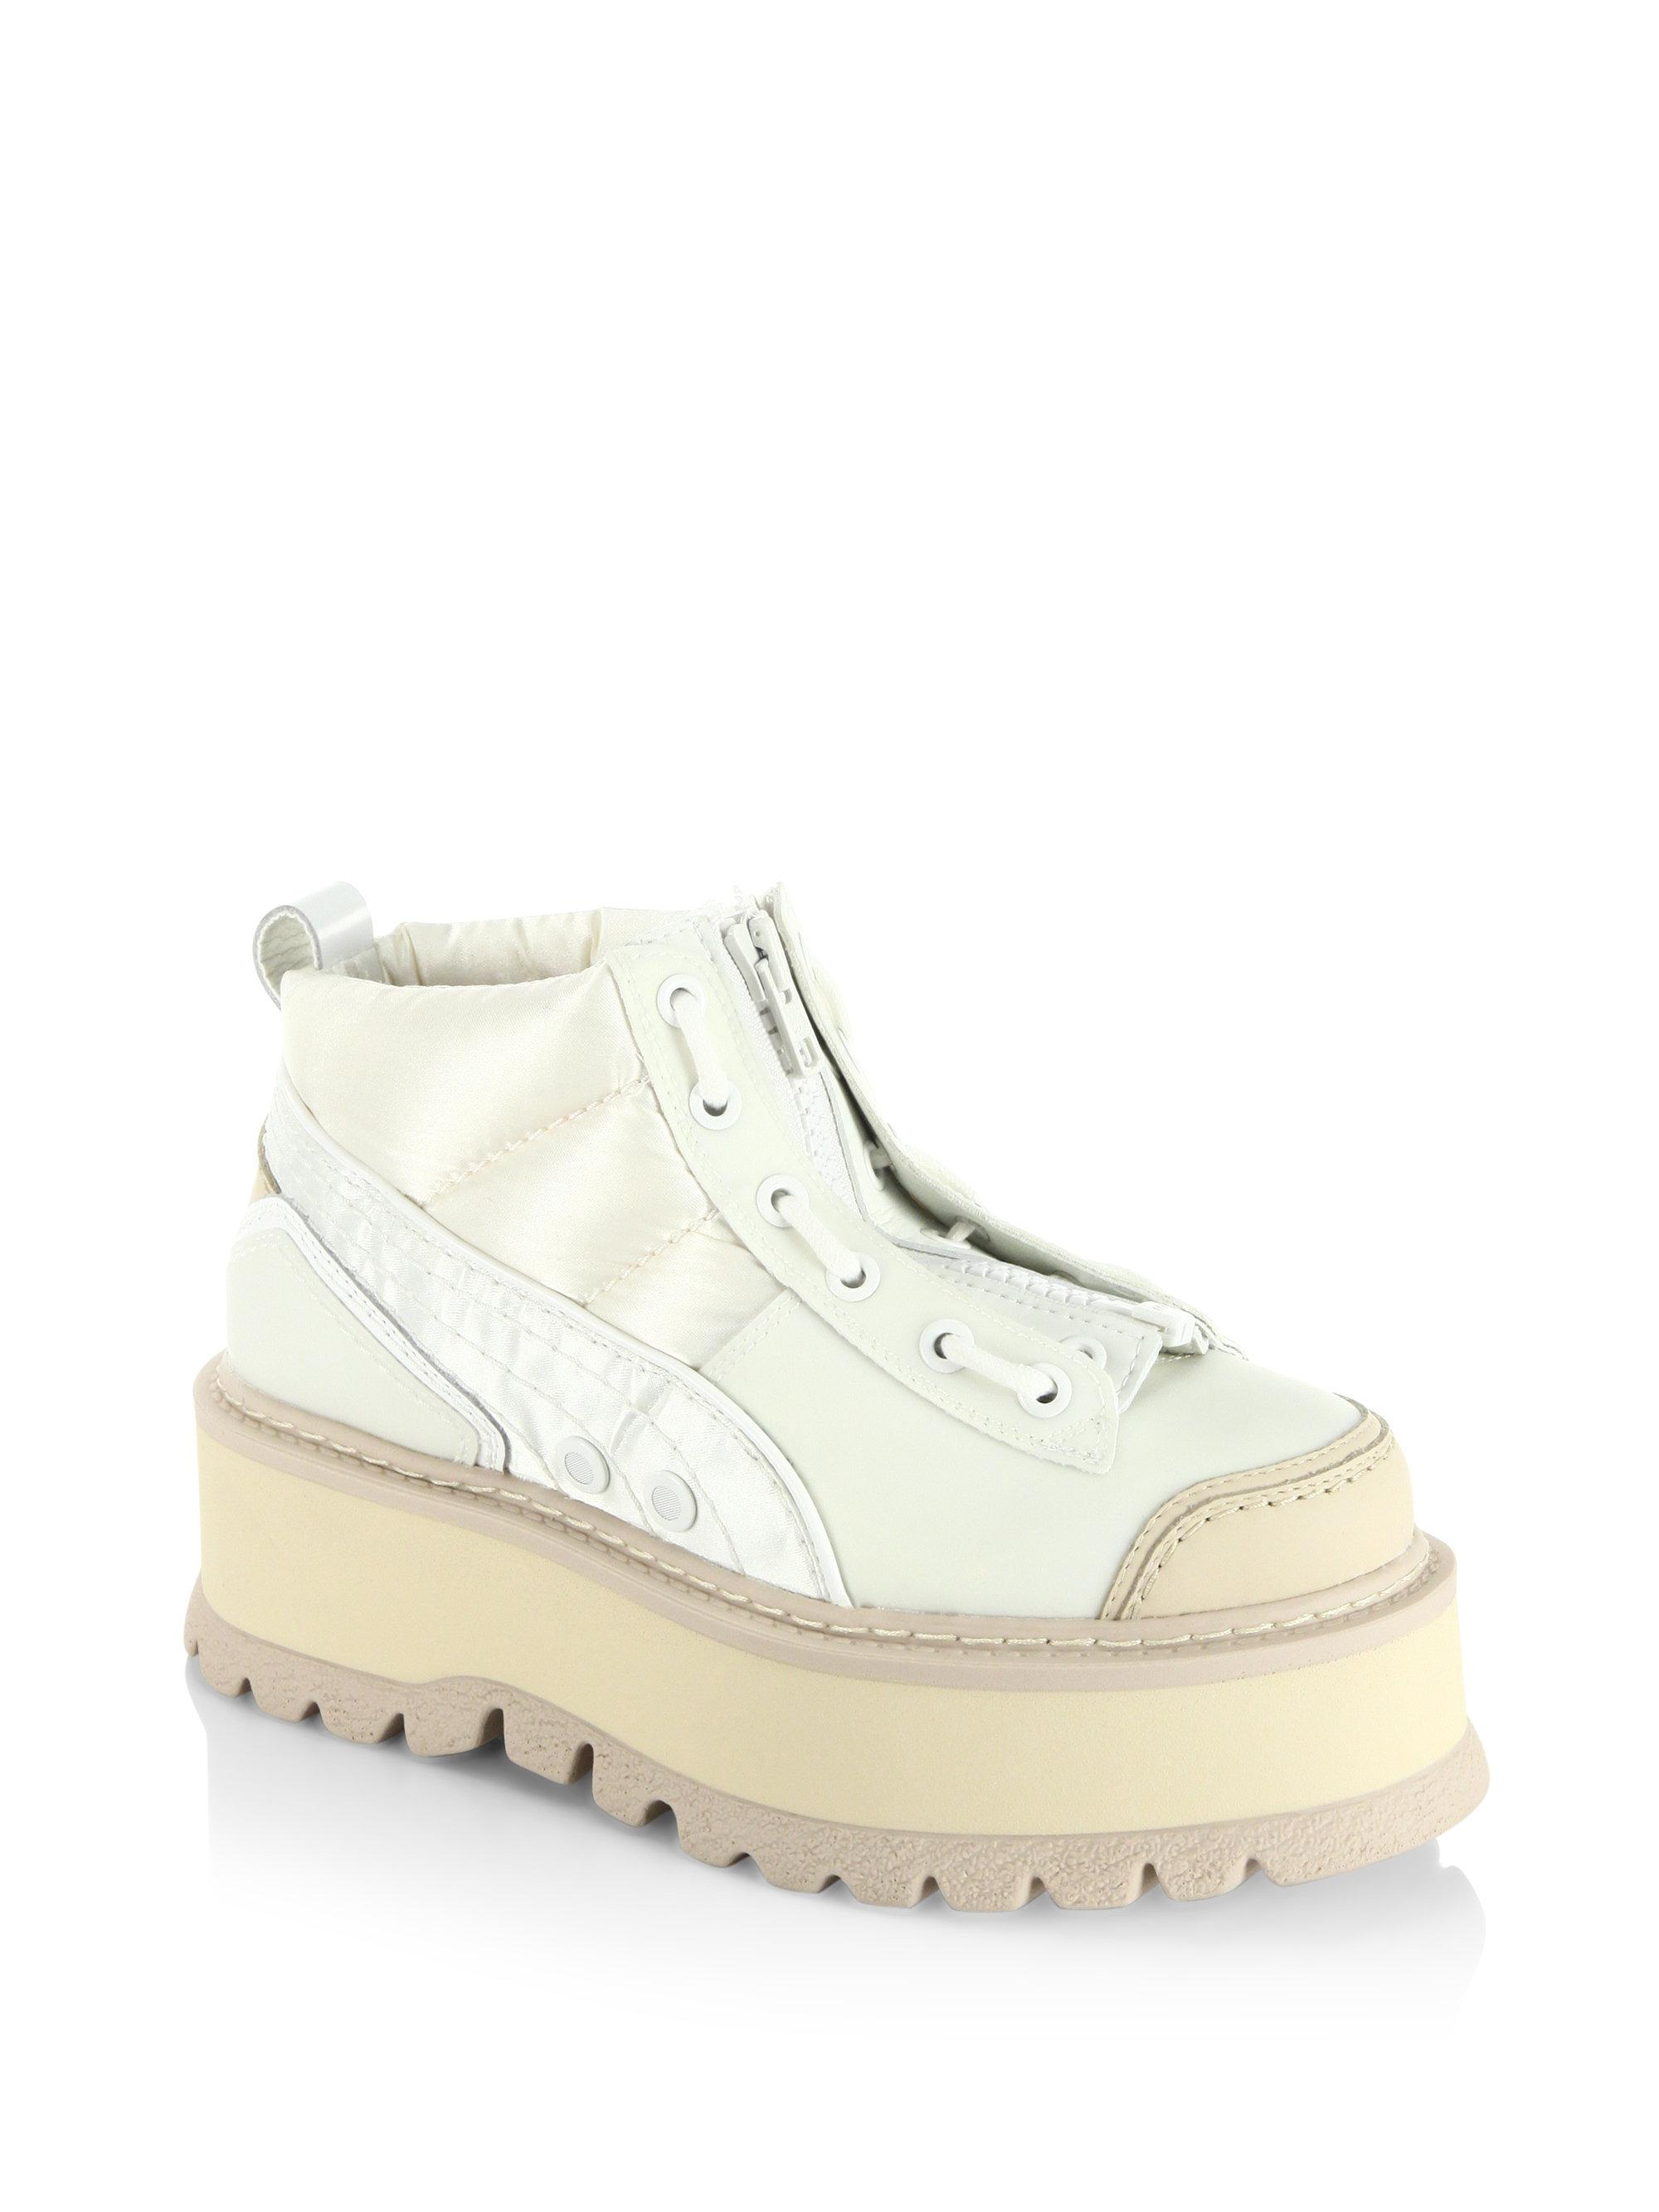 4341092314a412 Lyst - PUMA Fenty By Rihanna Leather Platform Sneaker Boots in White